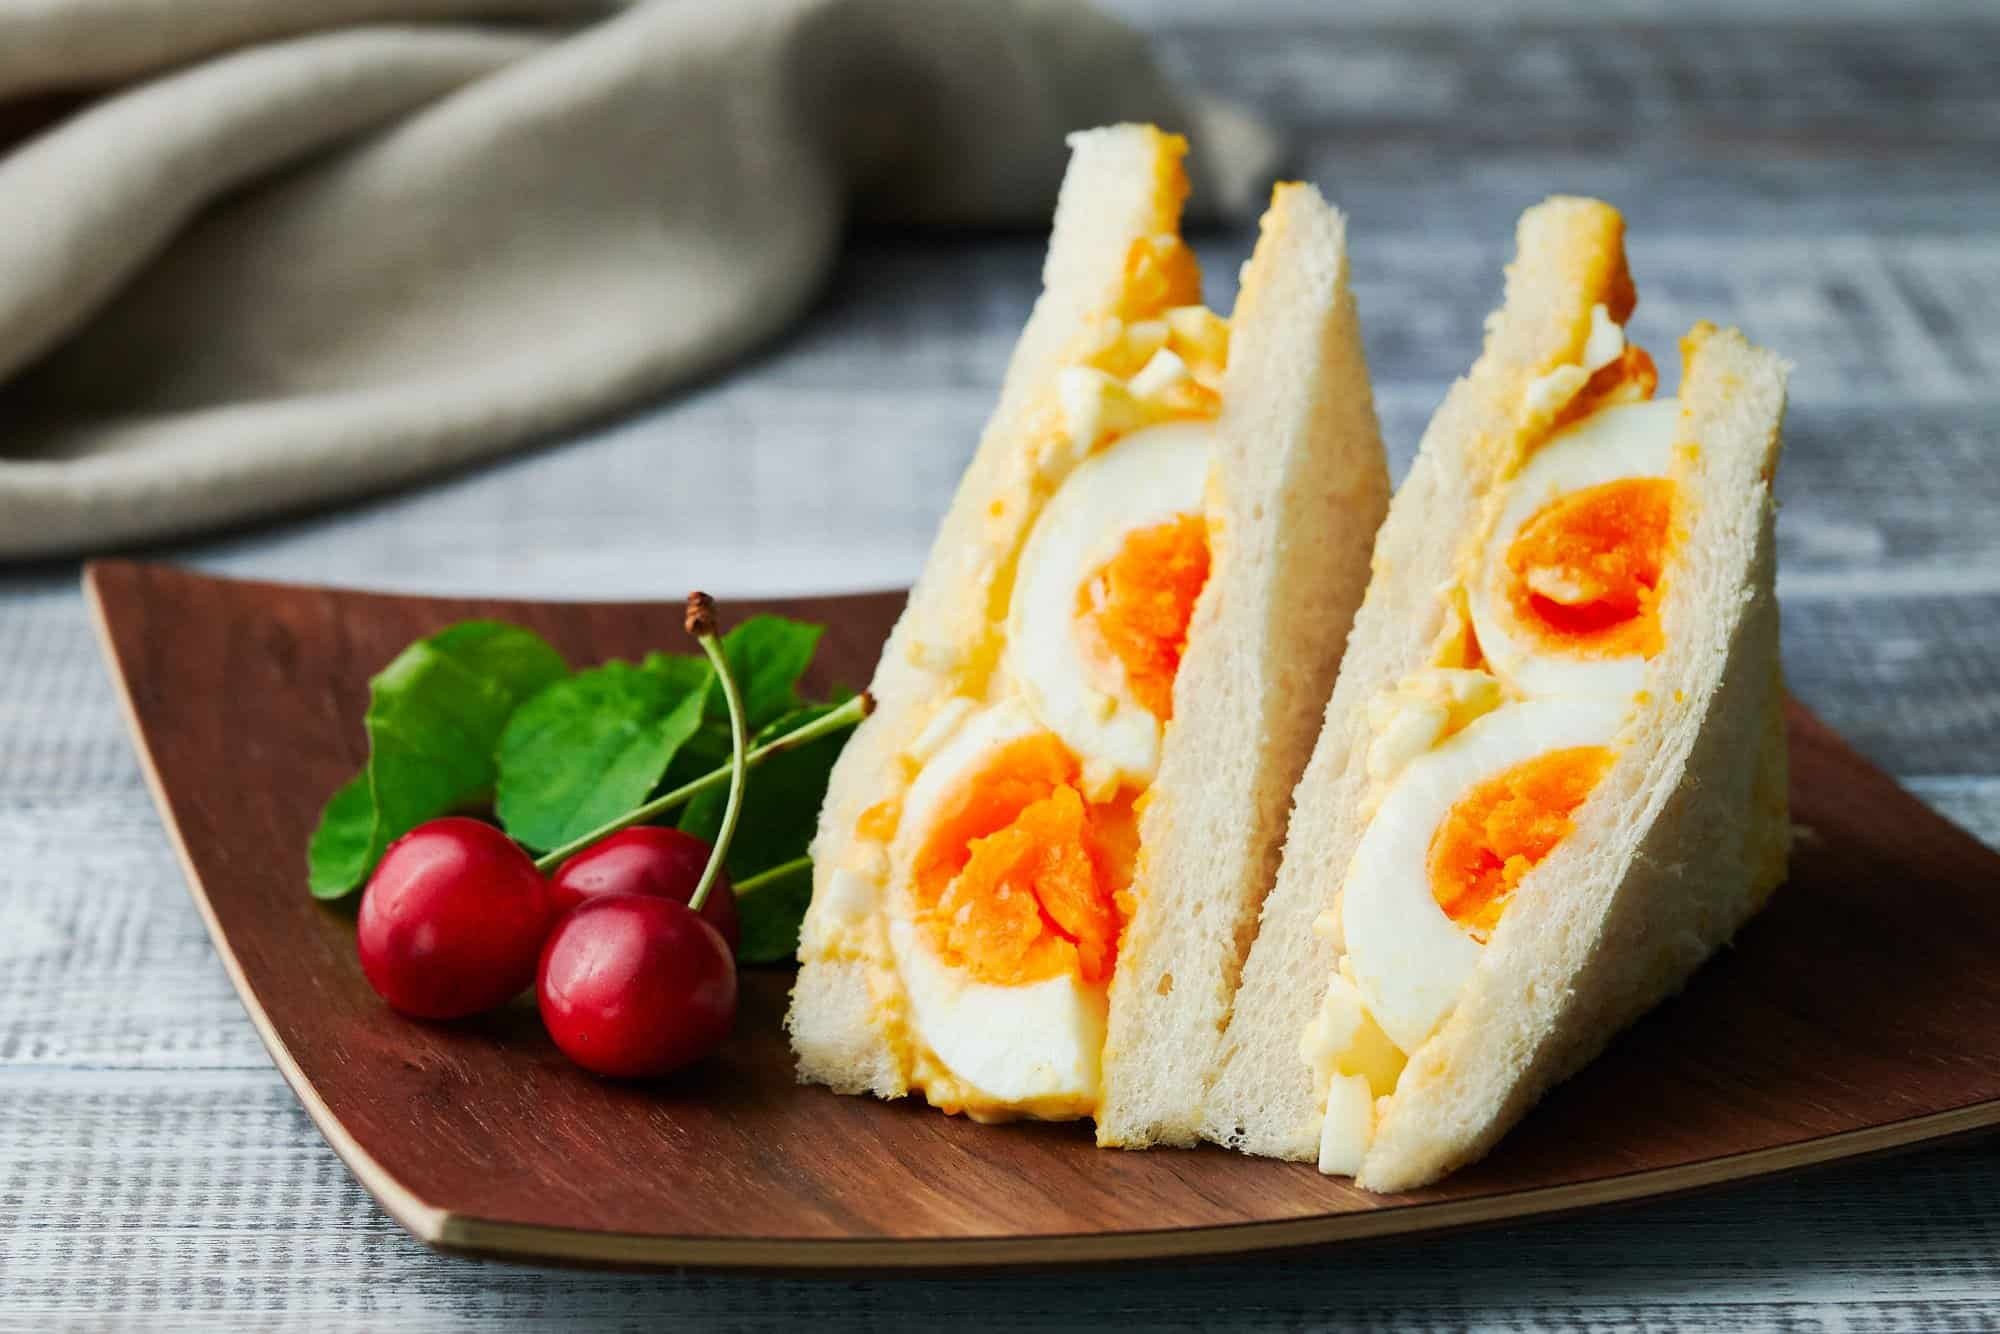 Japanese style egg sandwich including whole eggs on a wooden plate with cherries and arugula.